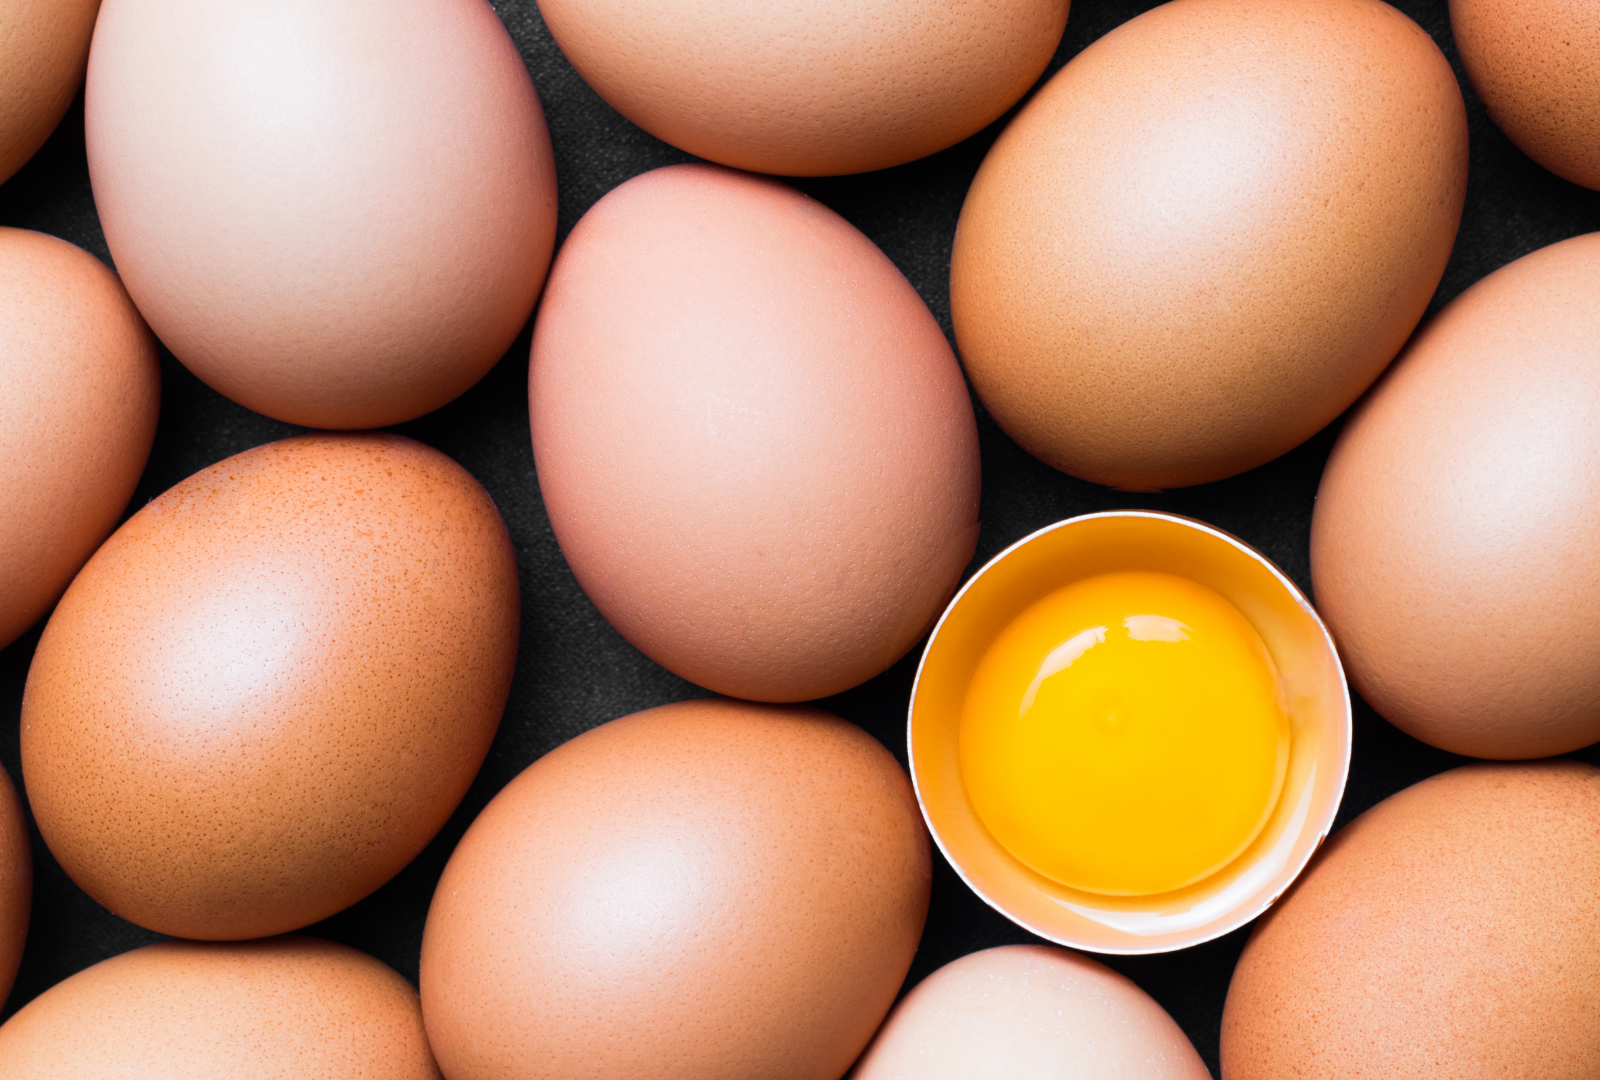 eggs and gut microbiome